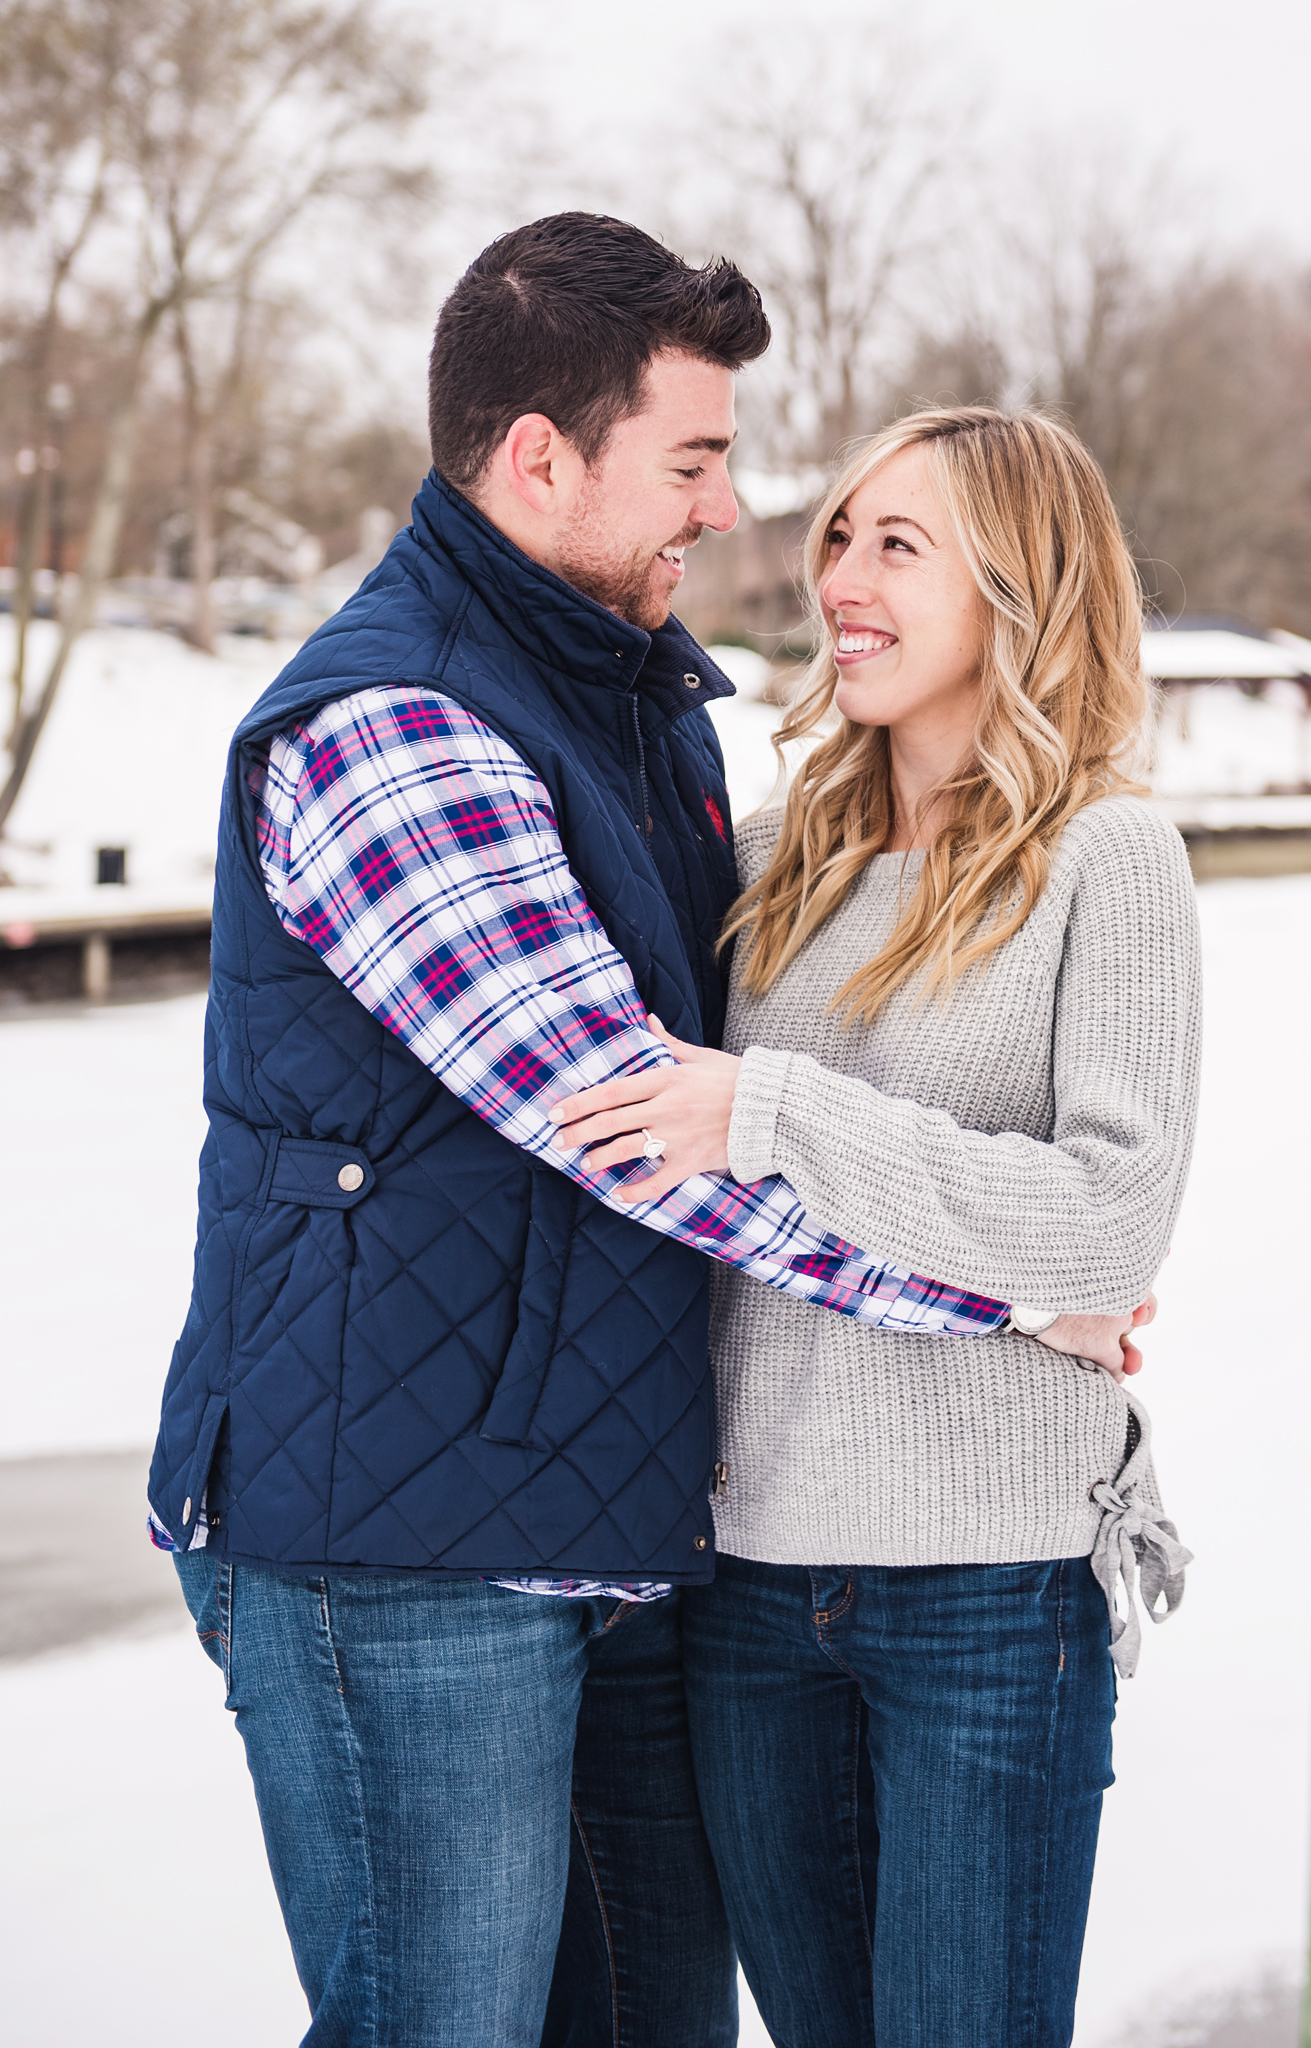 Schoen_Place_Rochester_Engagement_Session_JILL_STUDIO_Rochester_NY_Photographer_DSC_1168.jpg